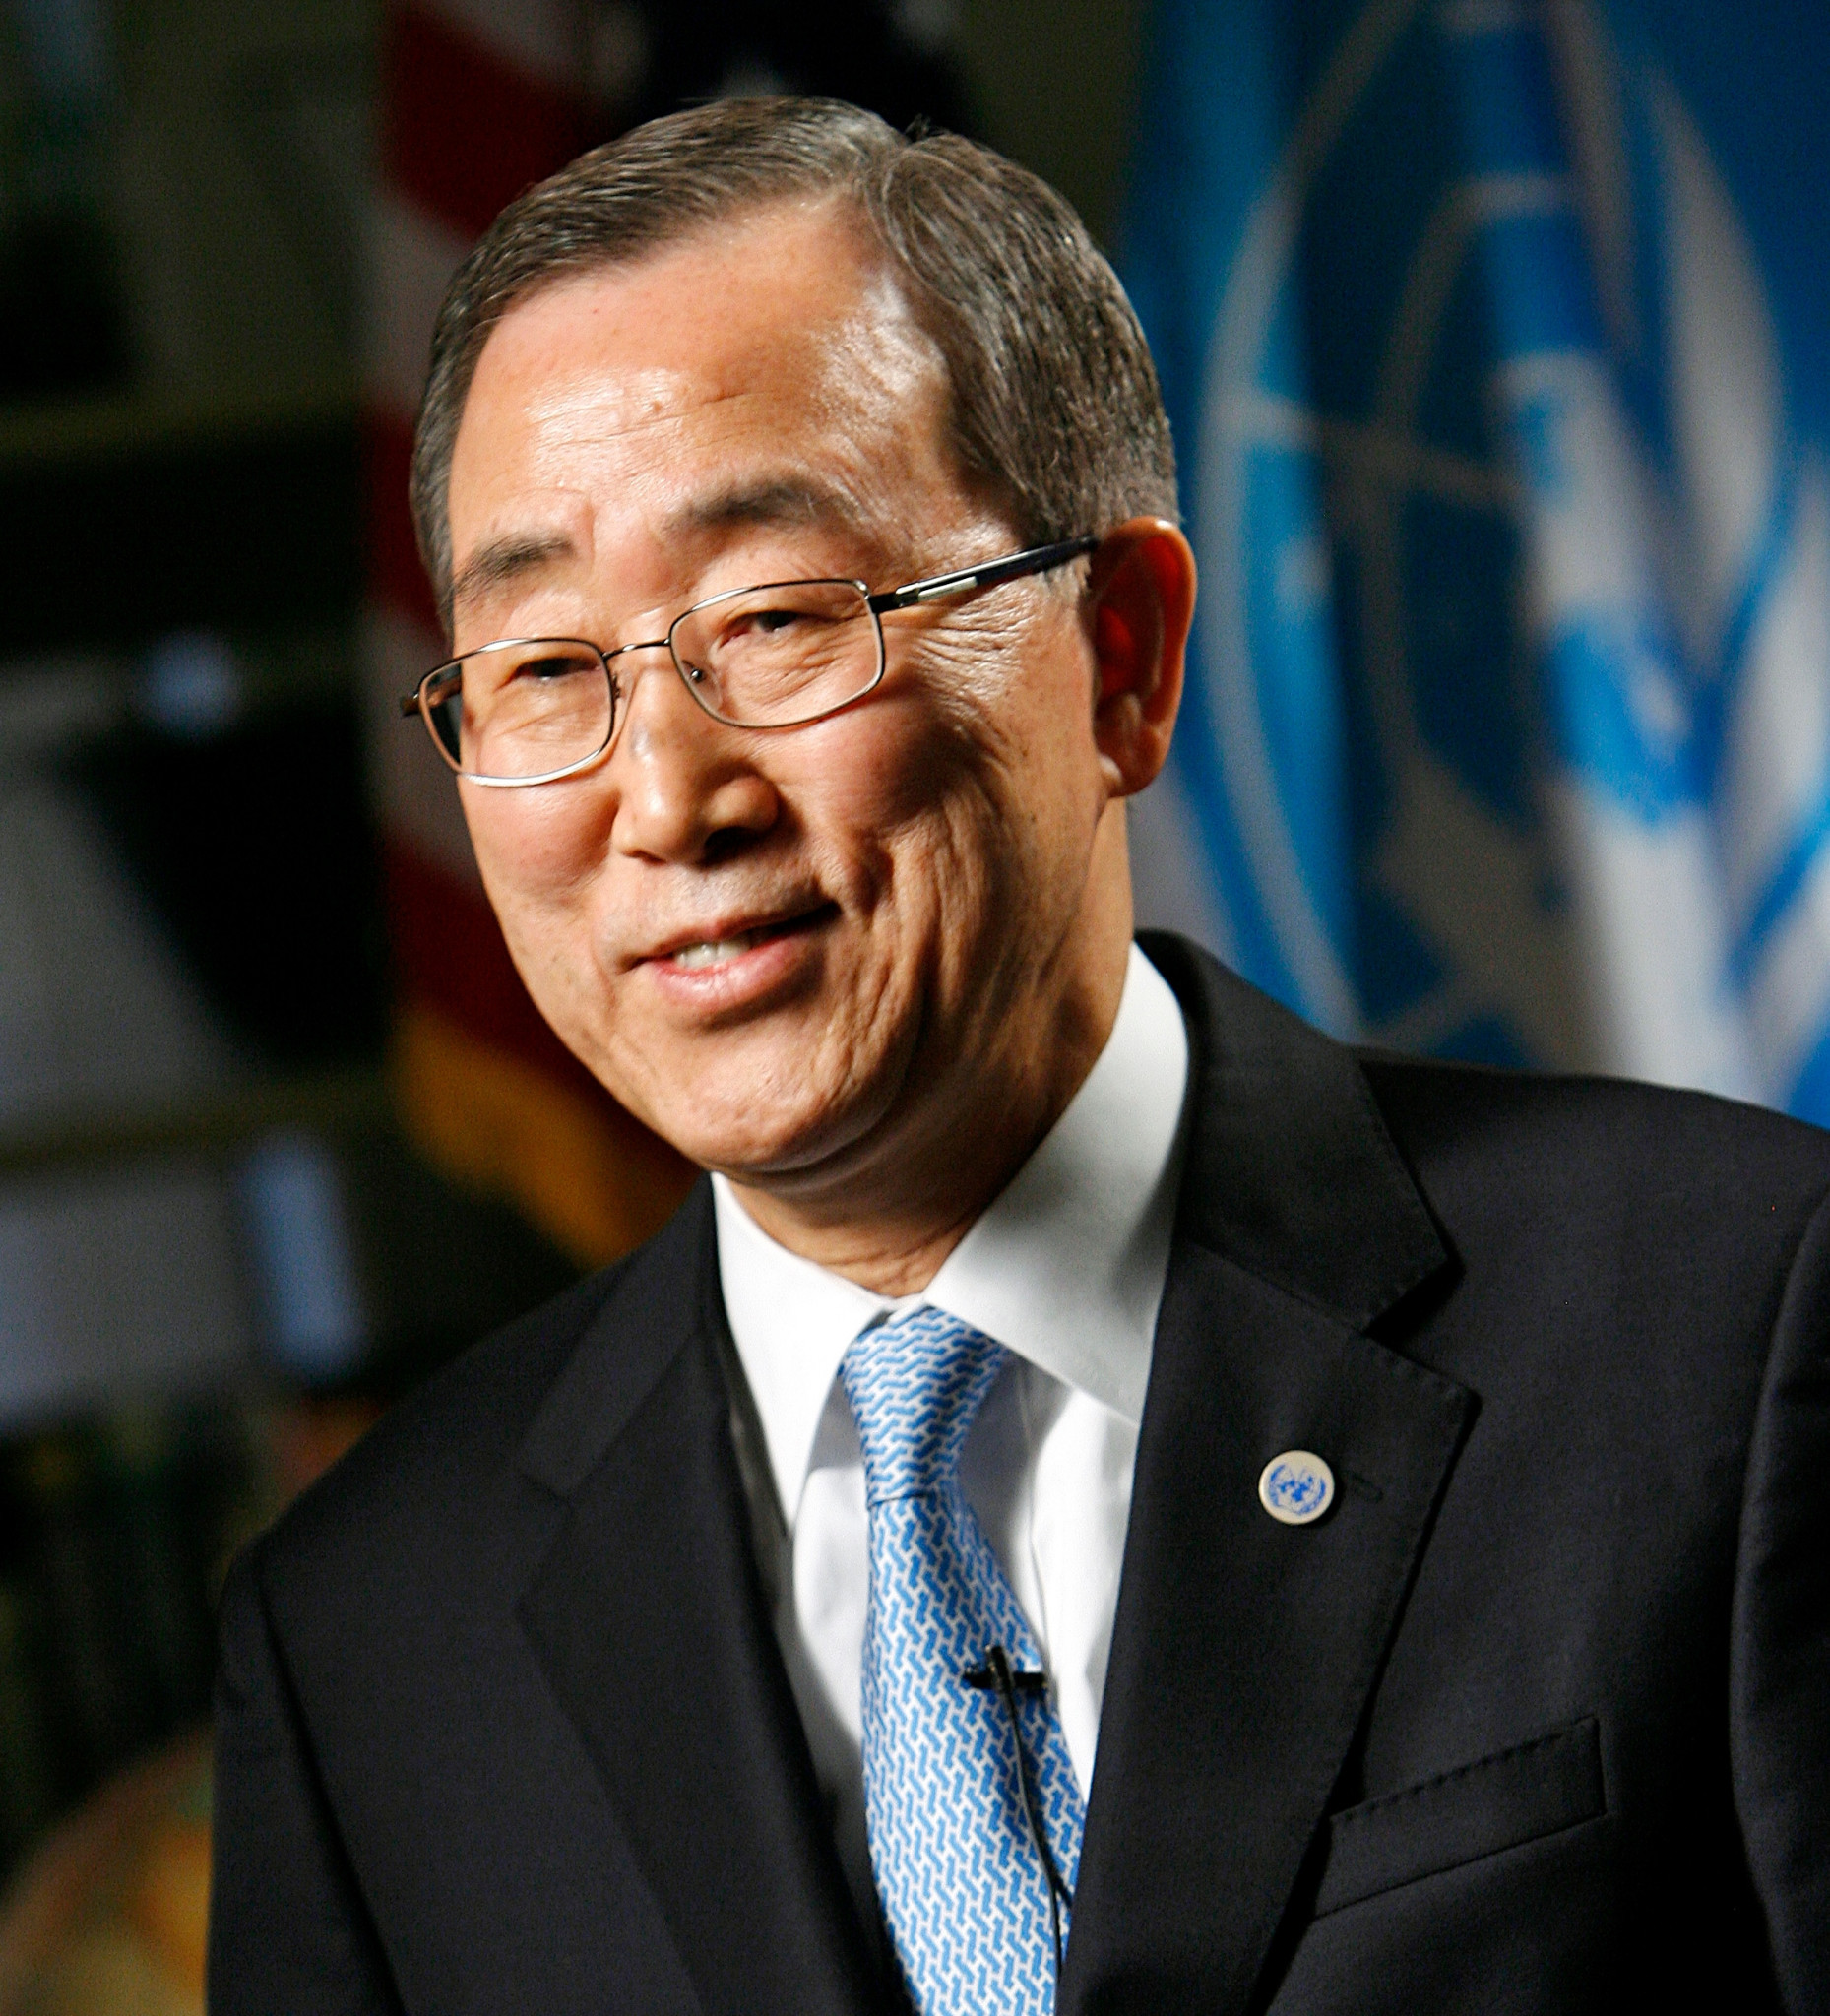 Former United Nations Secretary General to deliver opening address at SportAccord Summit